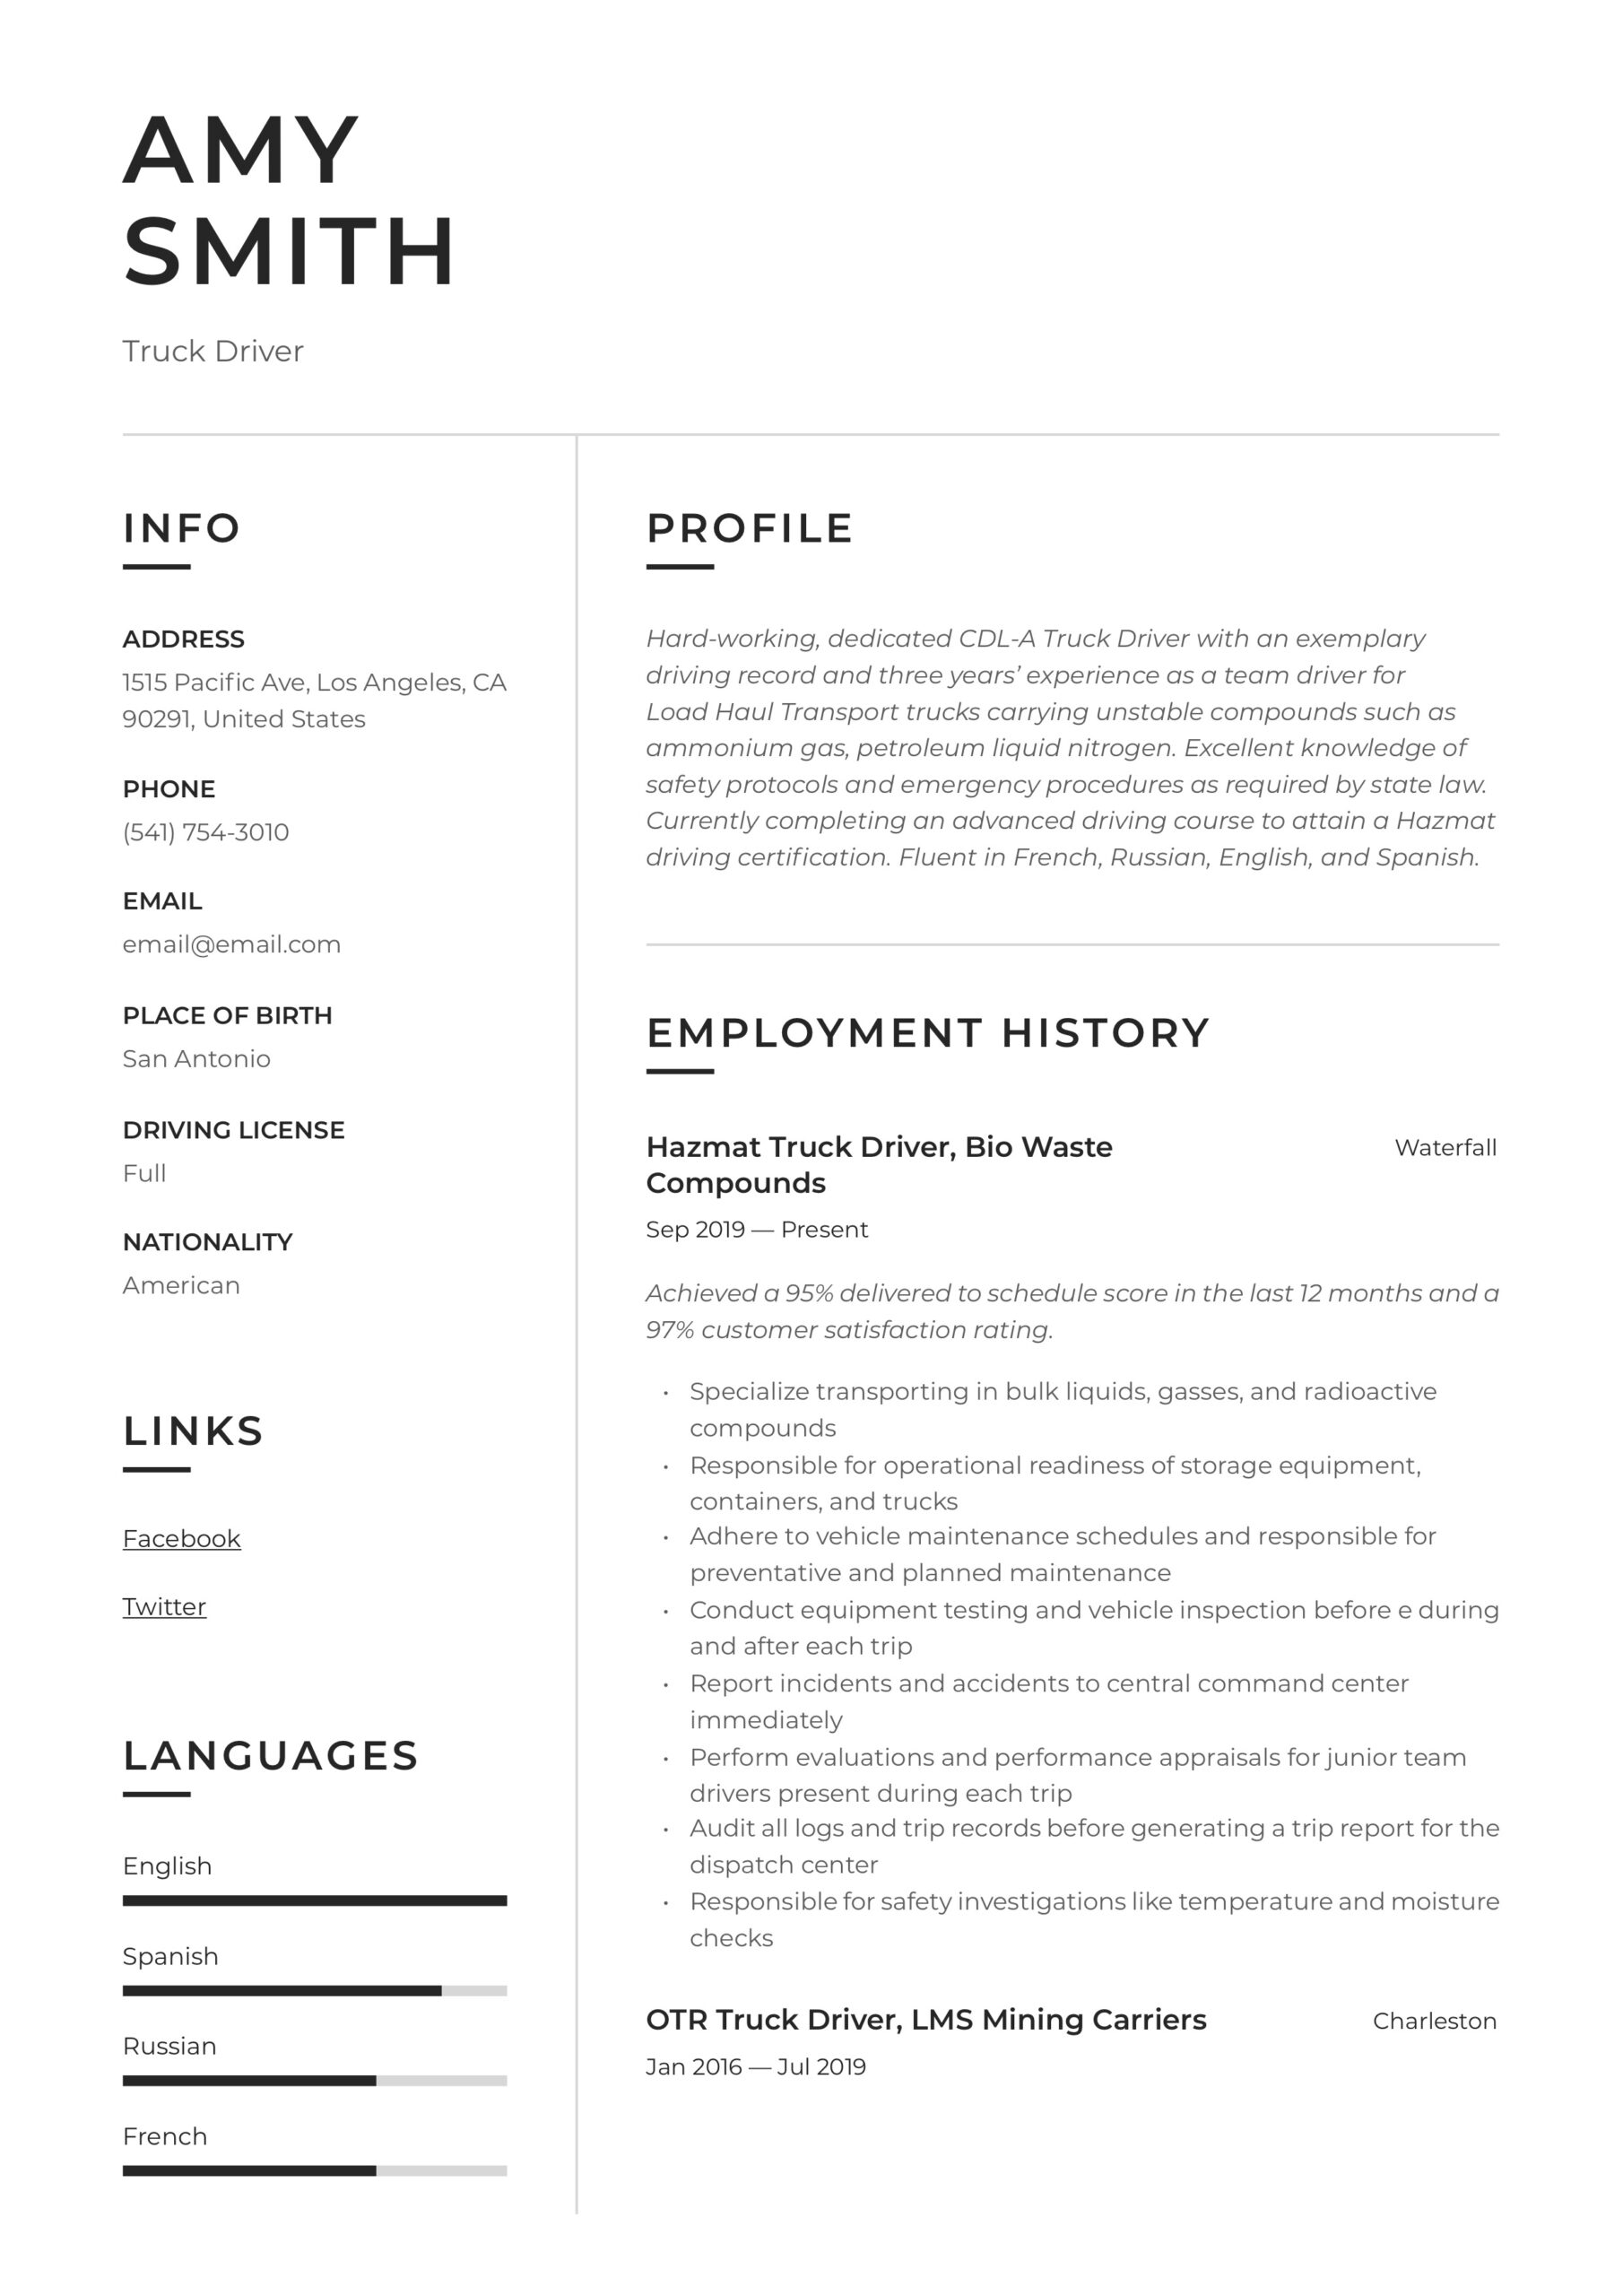 truck driver resume writing guide examples job basic work bank format for freshers cic Resume Truck Driver Job Resume